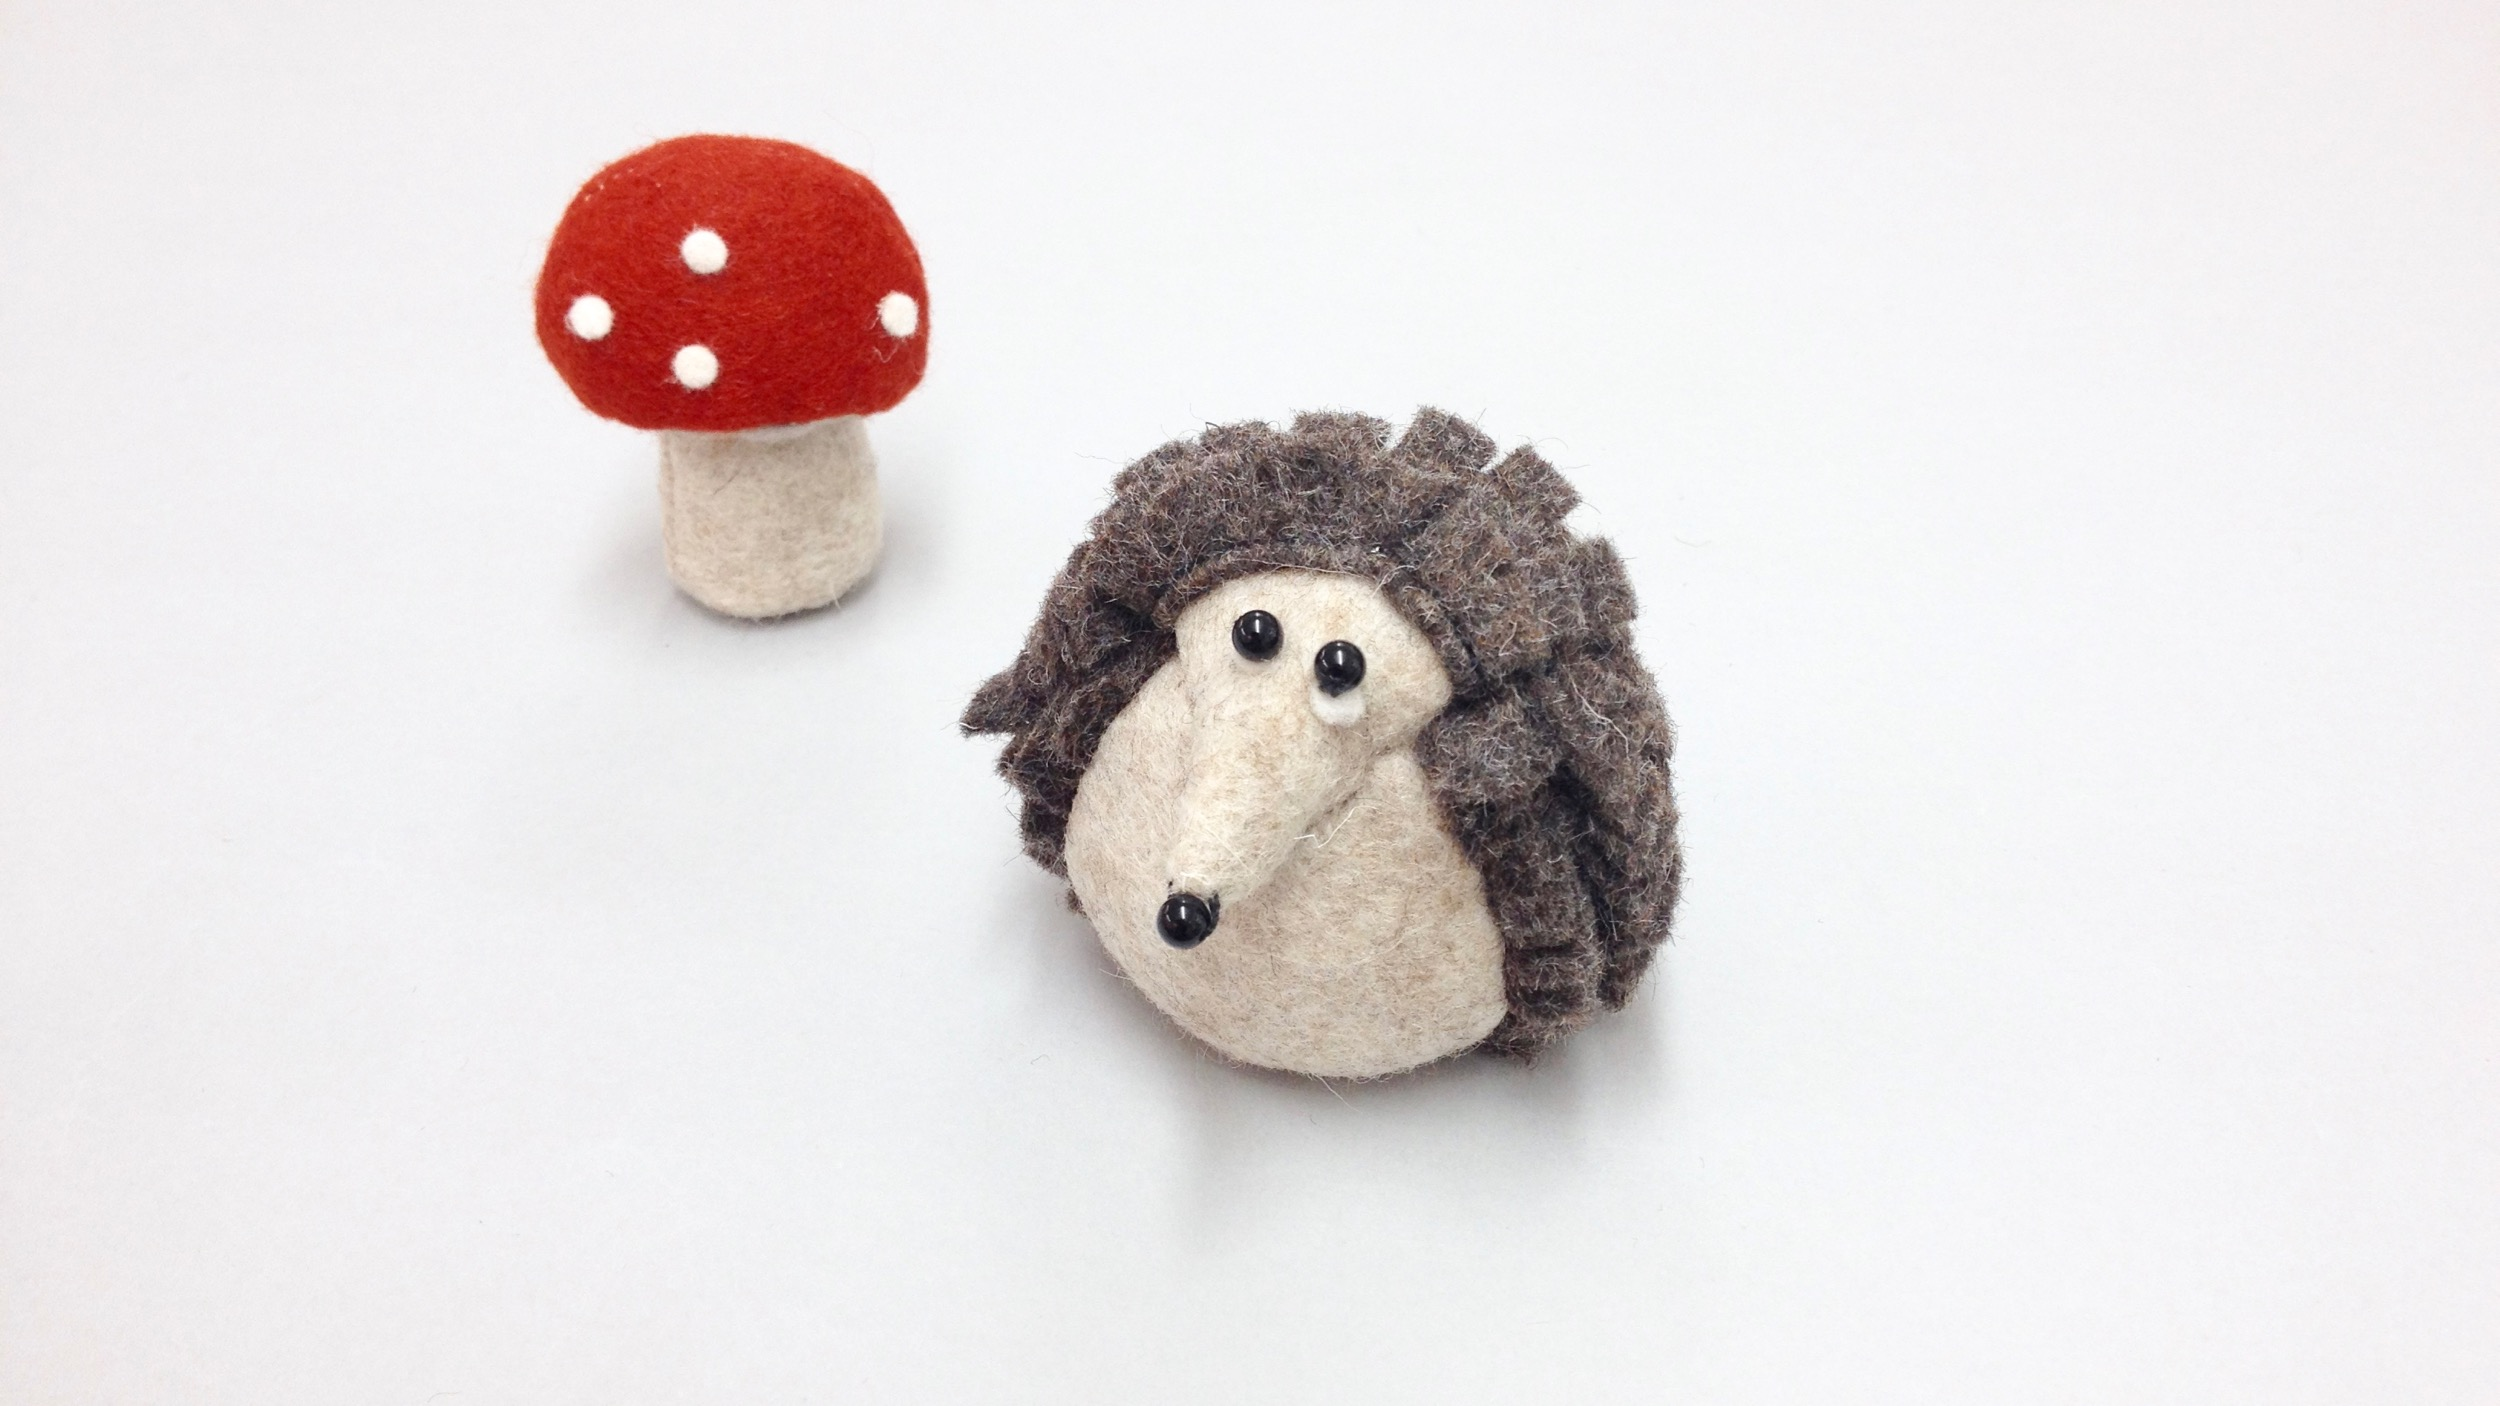 Bilberry Woods storybook character Hartwig the Hedgehog handmade from wool felt by Laura Mirjami | Mirjami Design.jpg